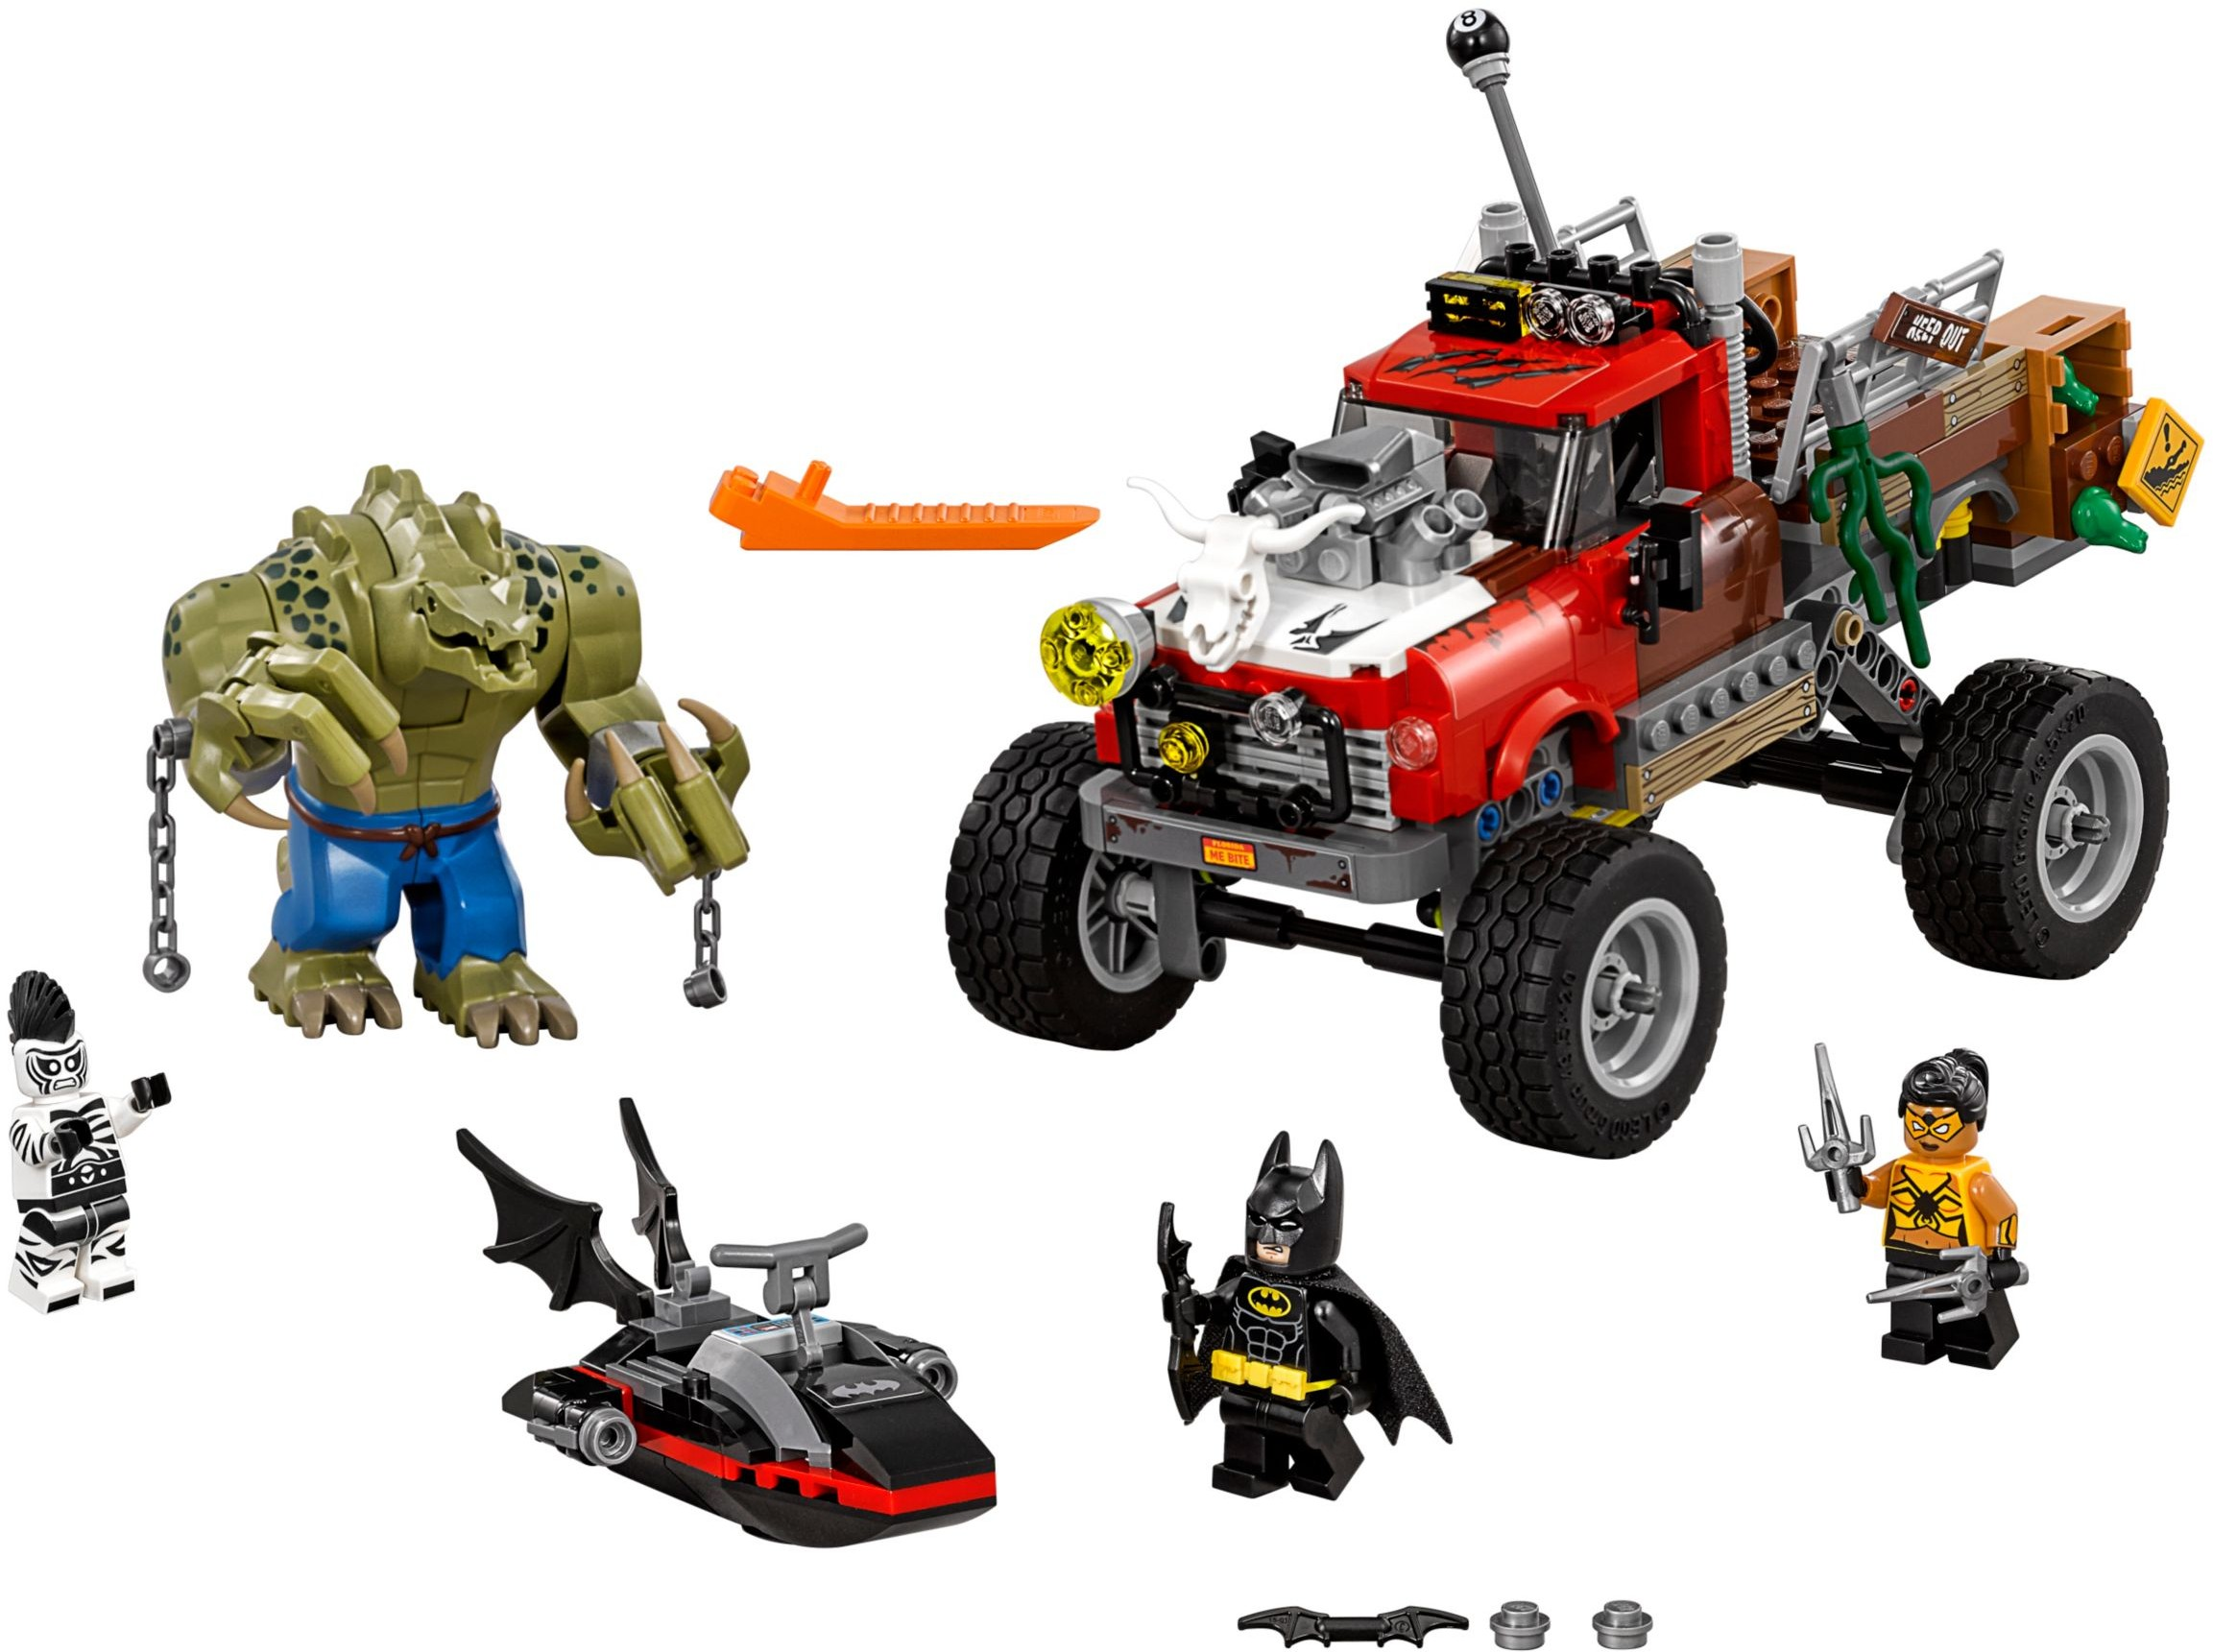 The Lego Batman Movie Brickset Lego Set Guide And Database